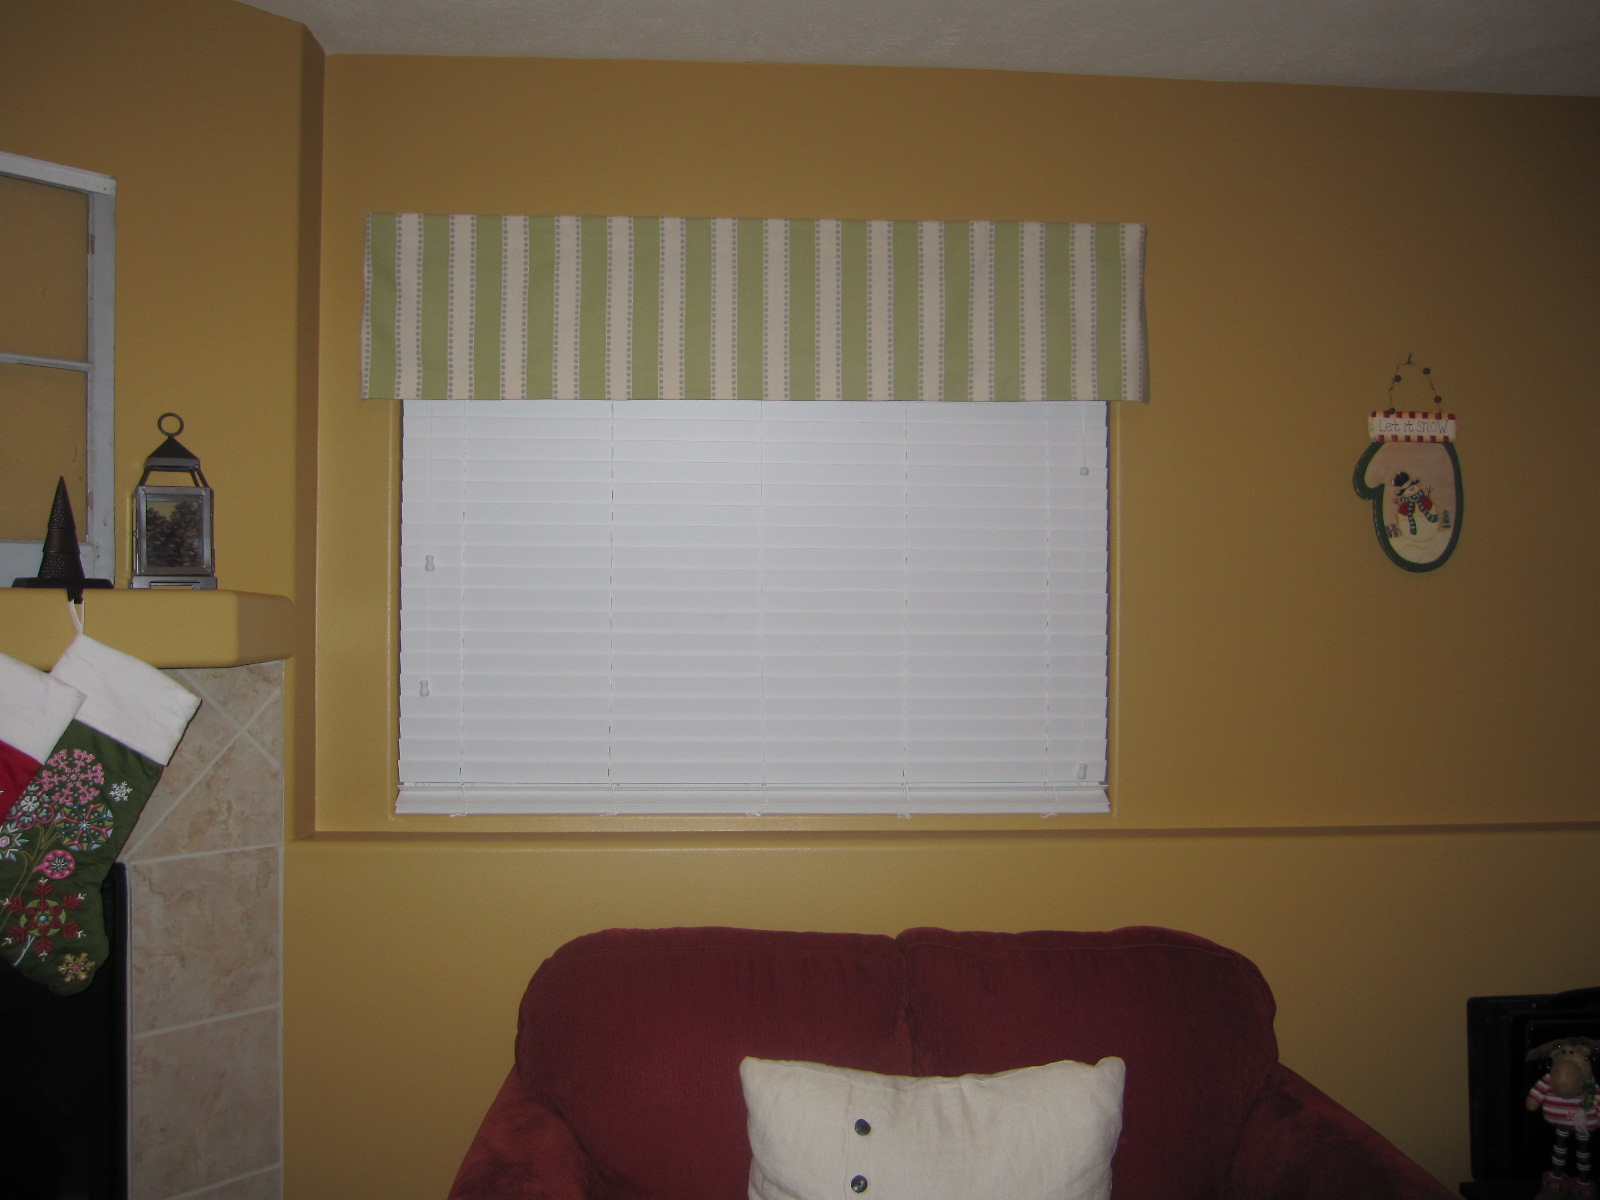 Enriched By Ethan Diy Project No Sew Window Valance